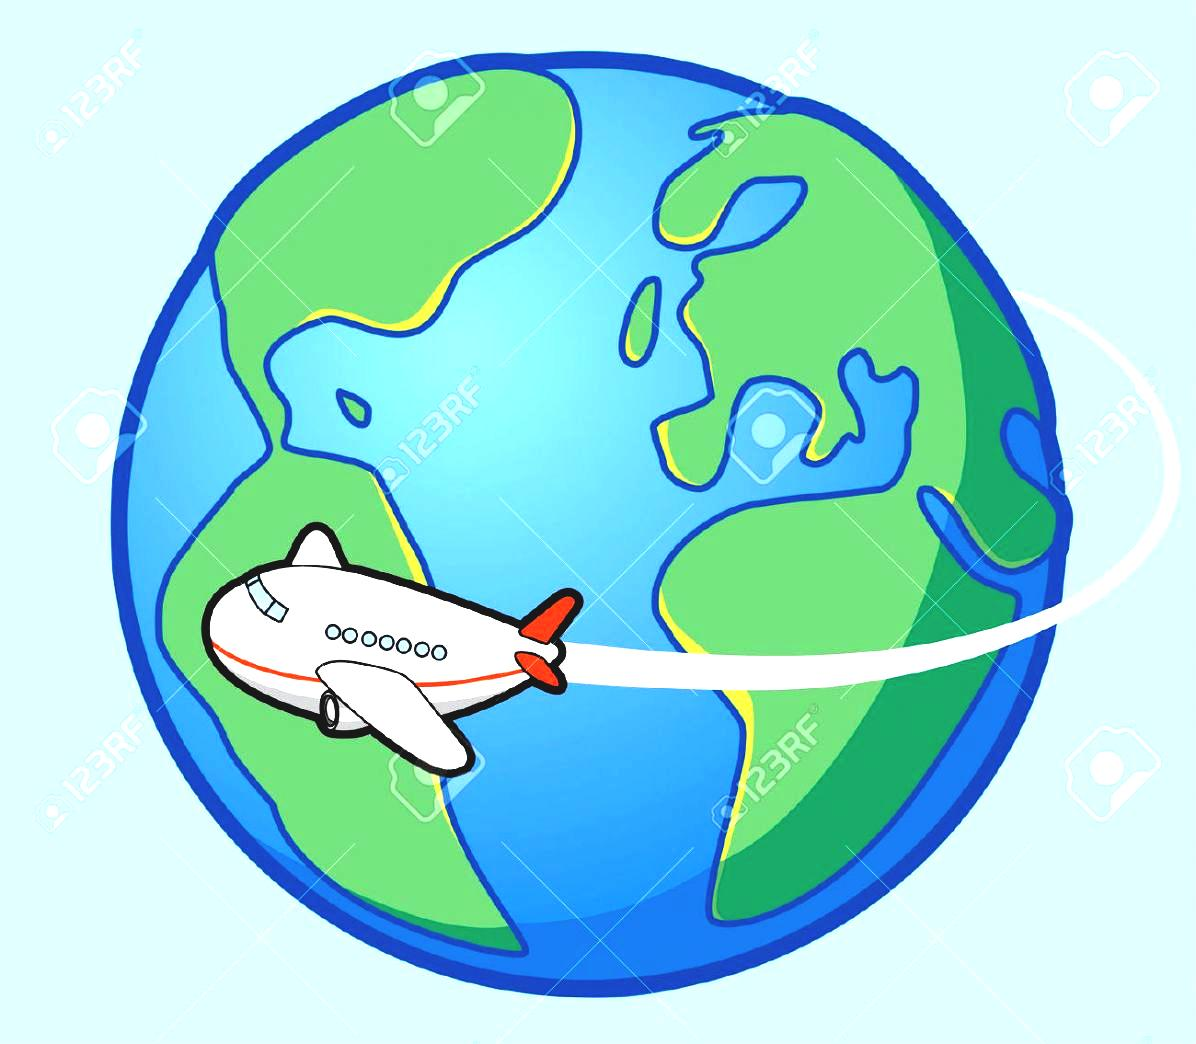 Free Cliparts Airplane Travel, Download Free Clip Art, Free Clip Art ... clipart royalty free